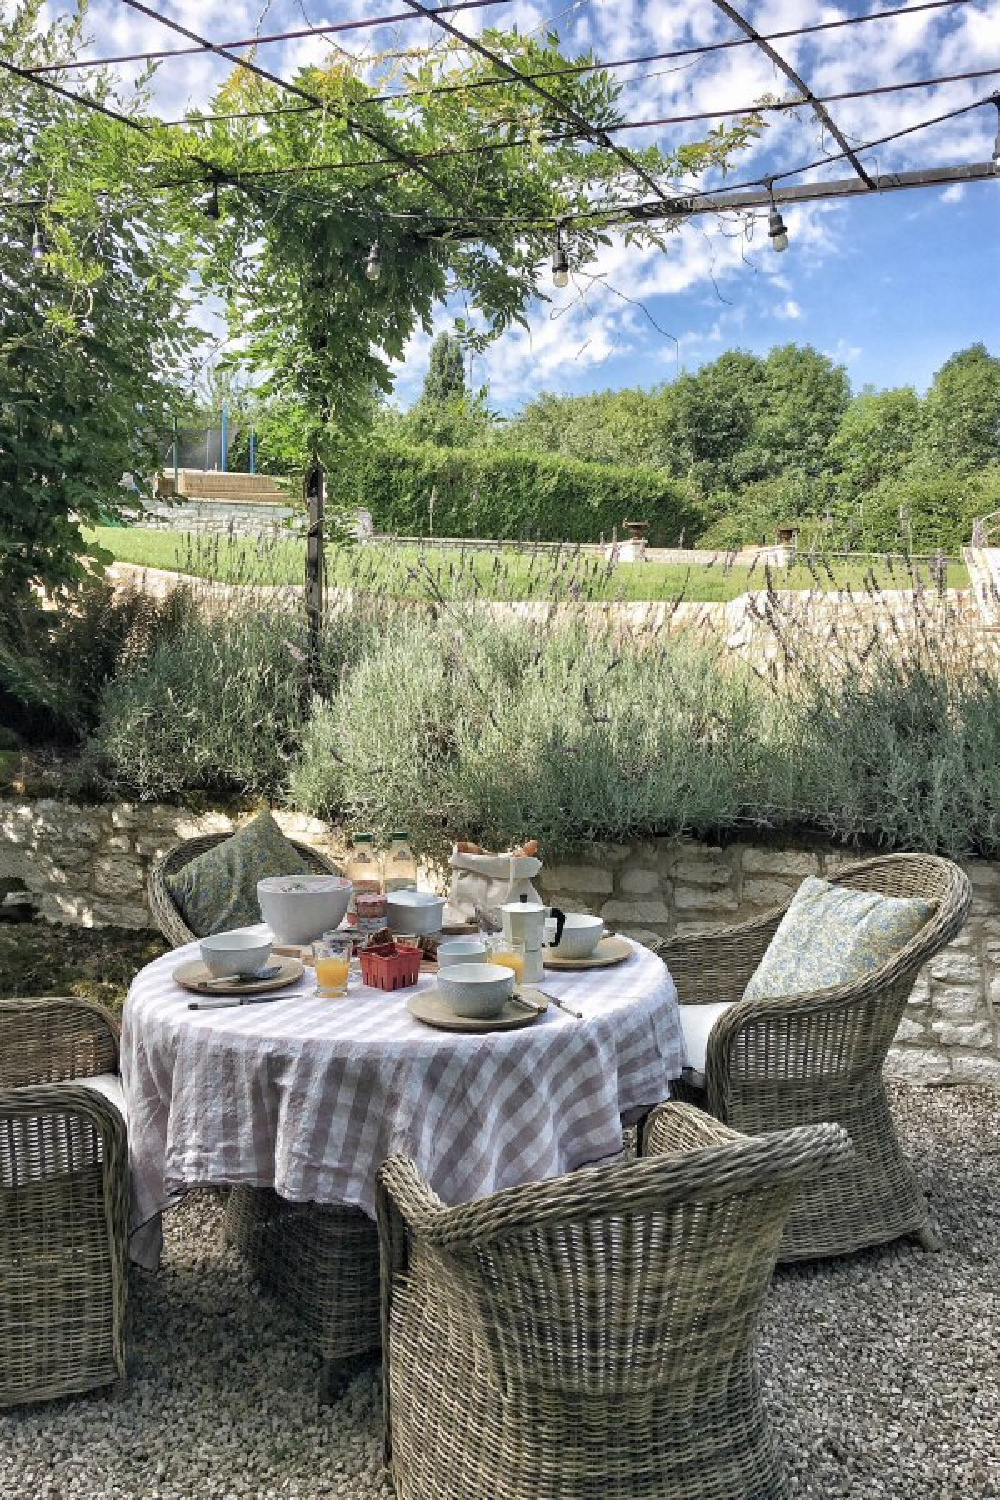 Outdoor dining in a French courtyard. Blush tablecloth by Vivi et Margot. #vivietmargot #frenchfarmhouse #outdoor #dining #kubuchair